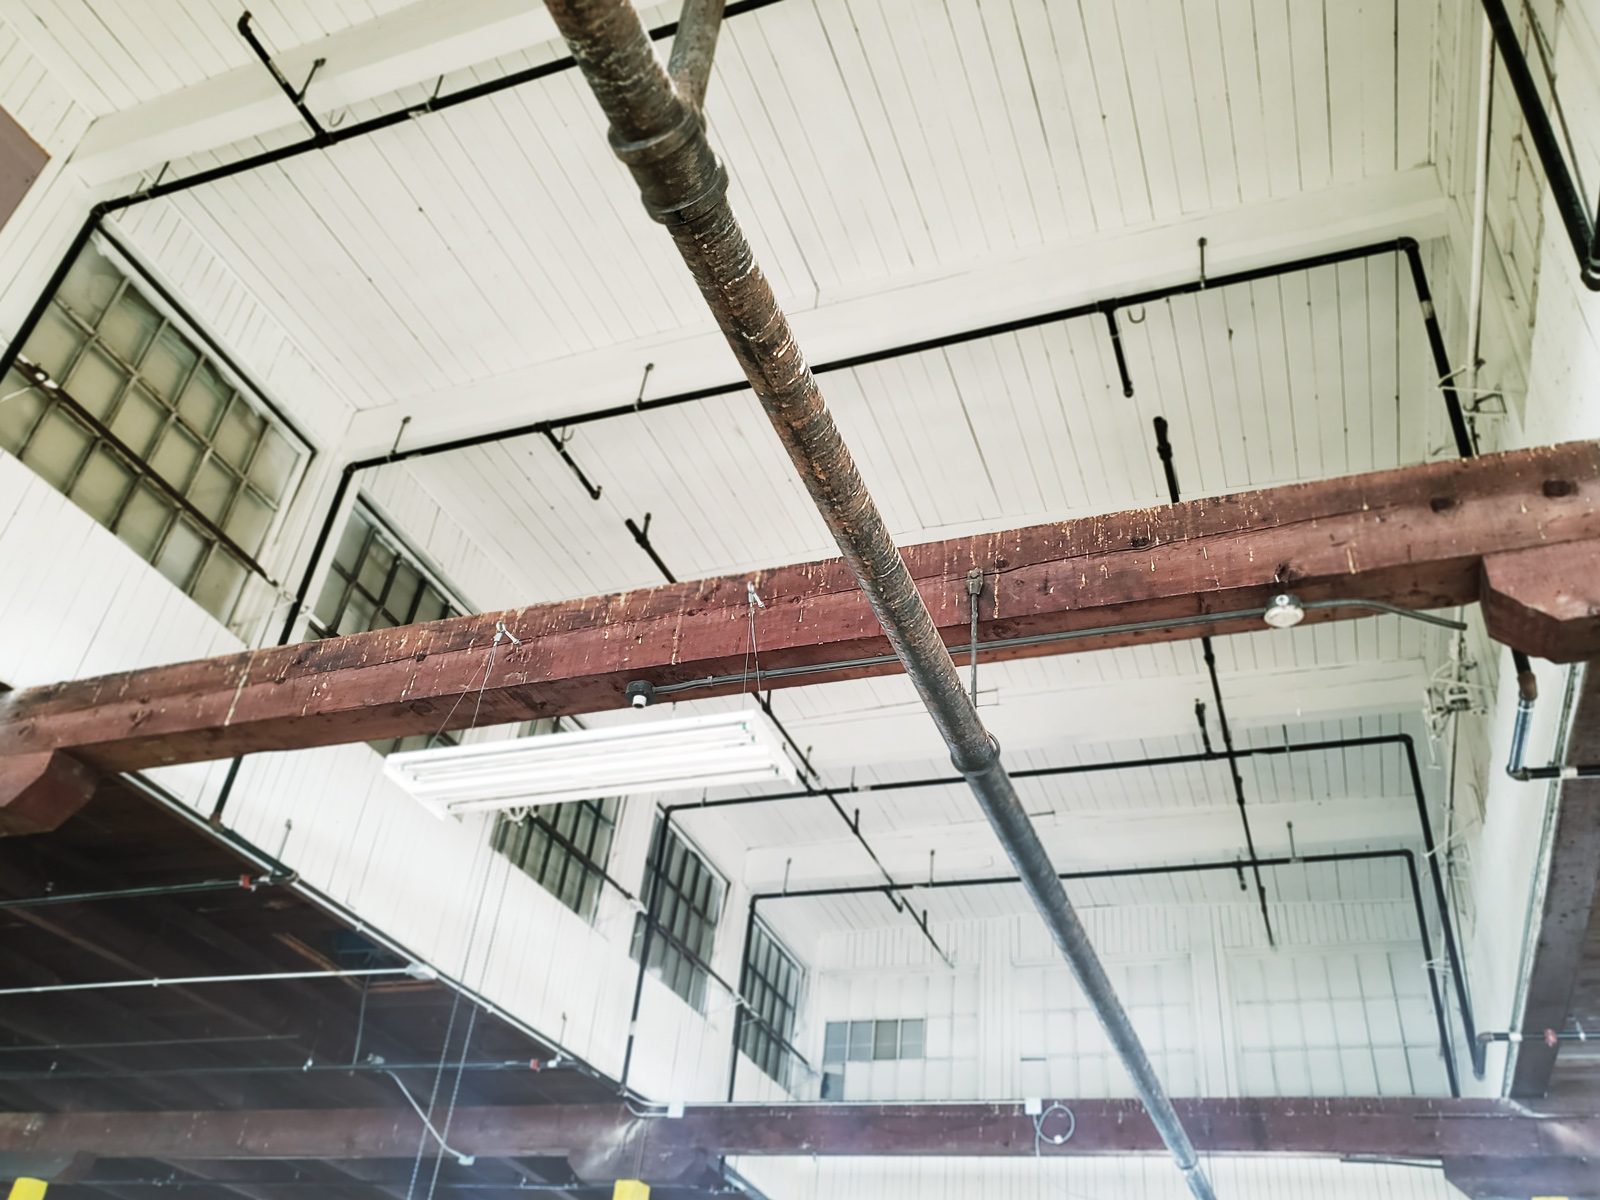 Industrial beams covered in bird droppings.